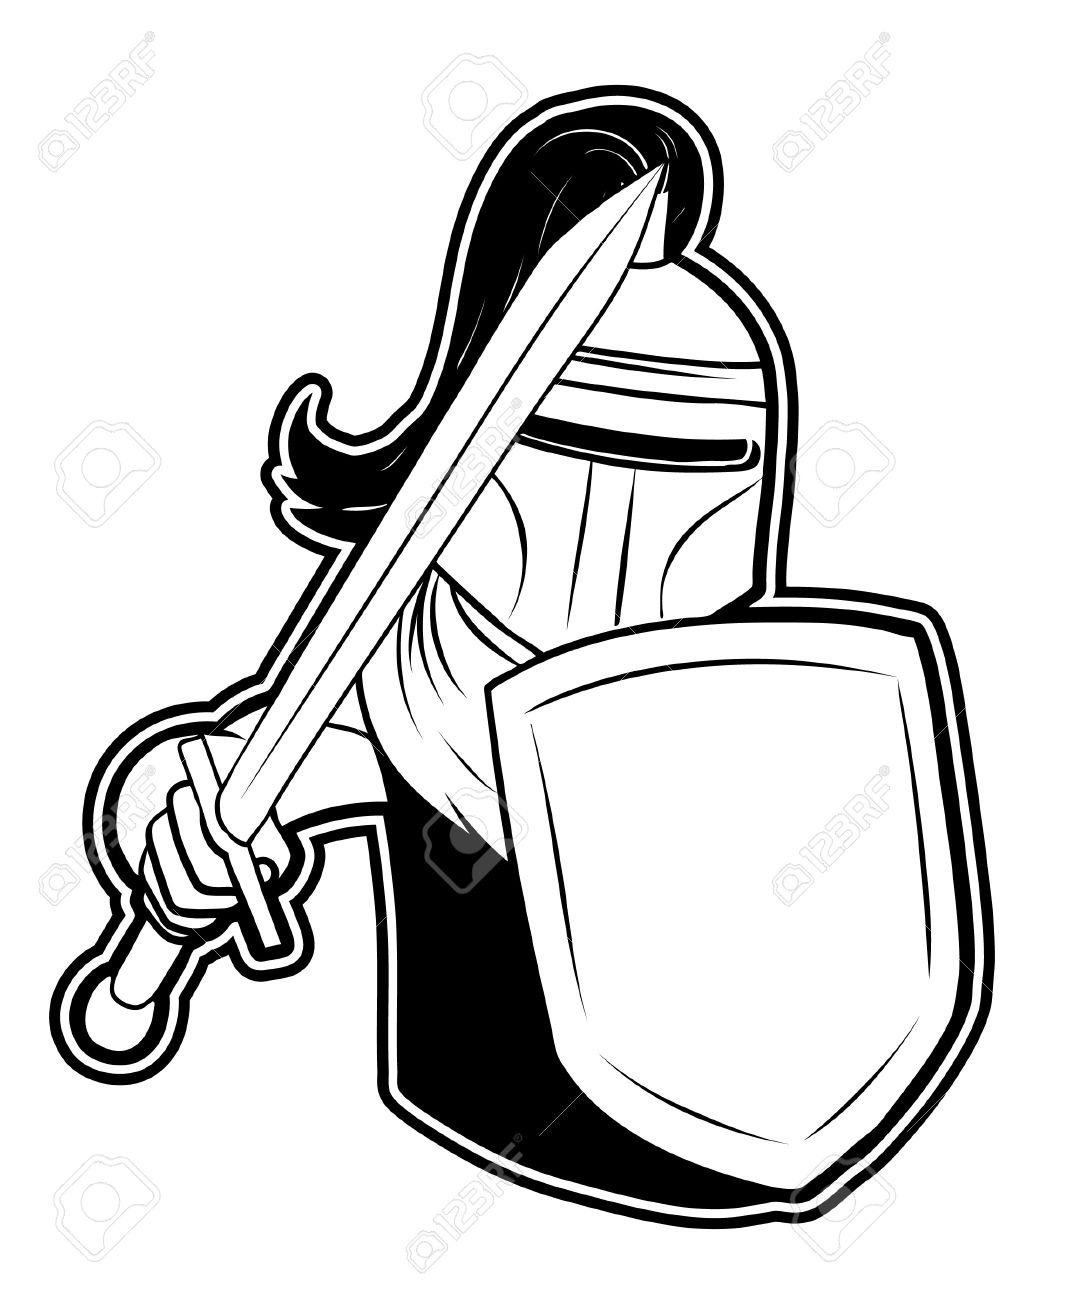 1071x1300 Knight Clipart Black And White